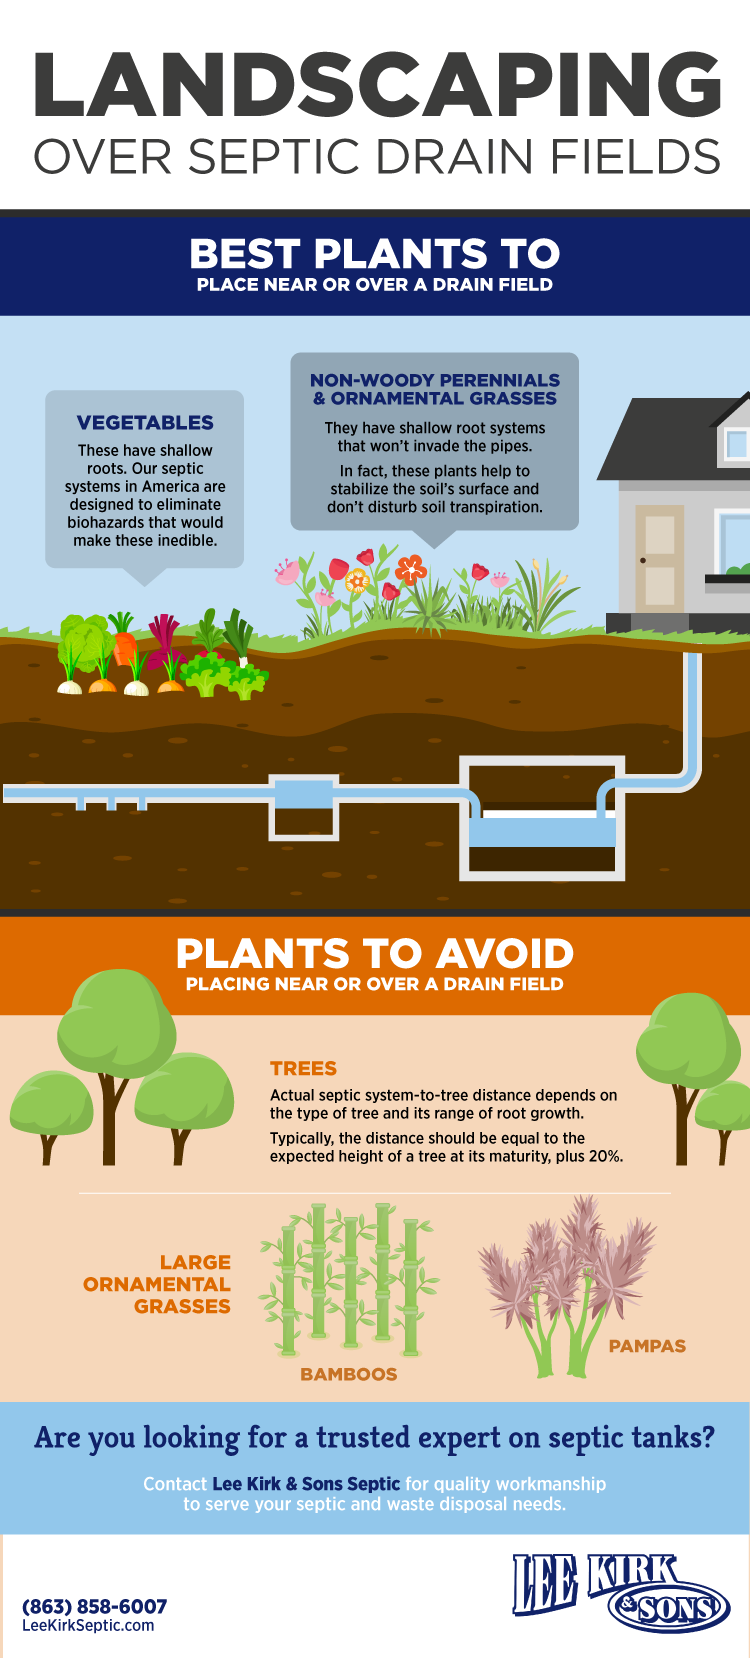 Perfect Plants To Place Over A Septic Drain Field Tips